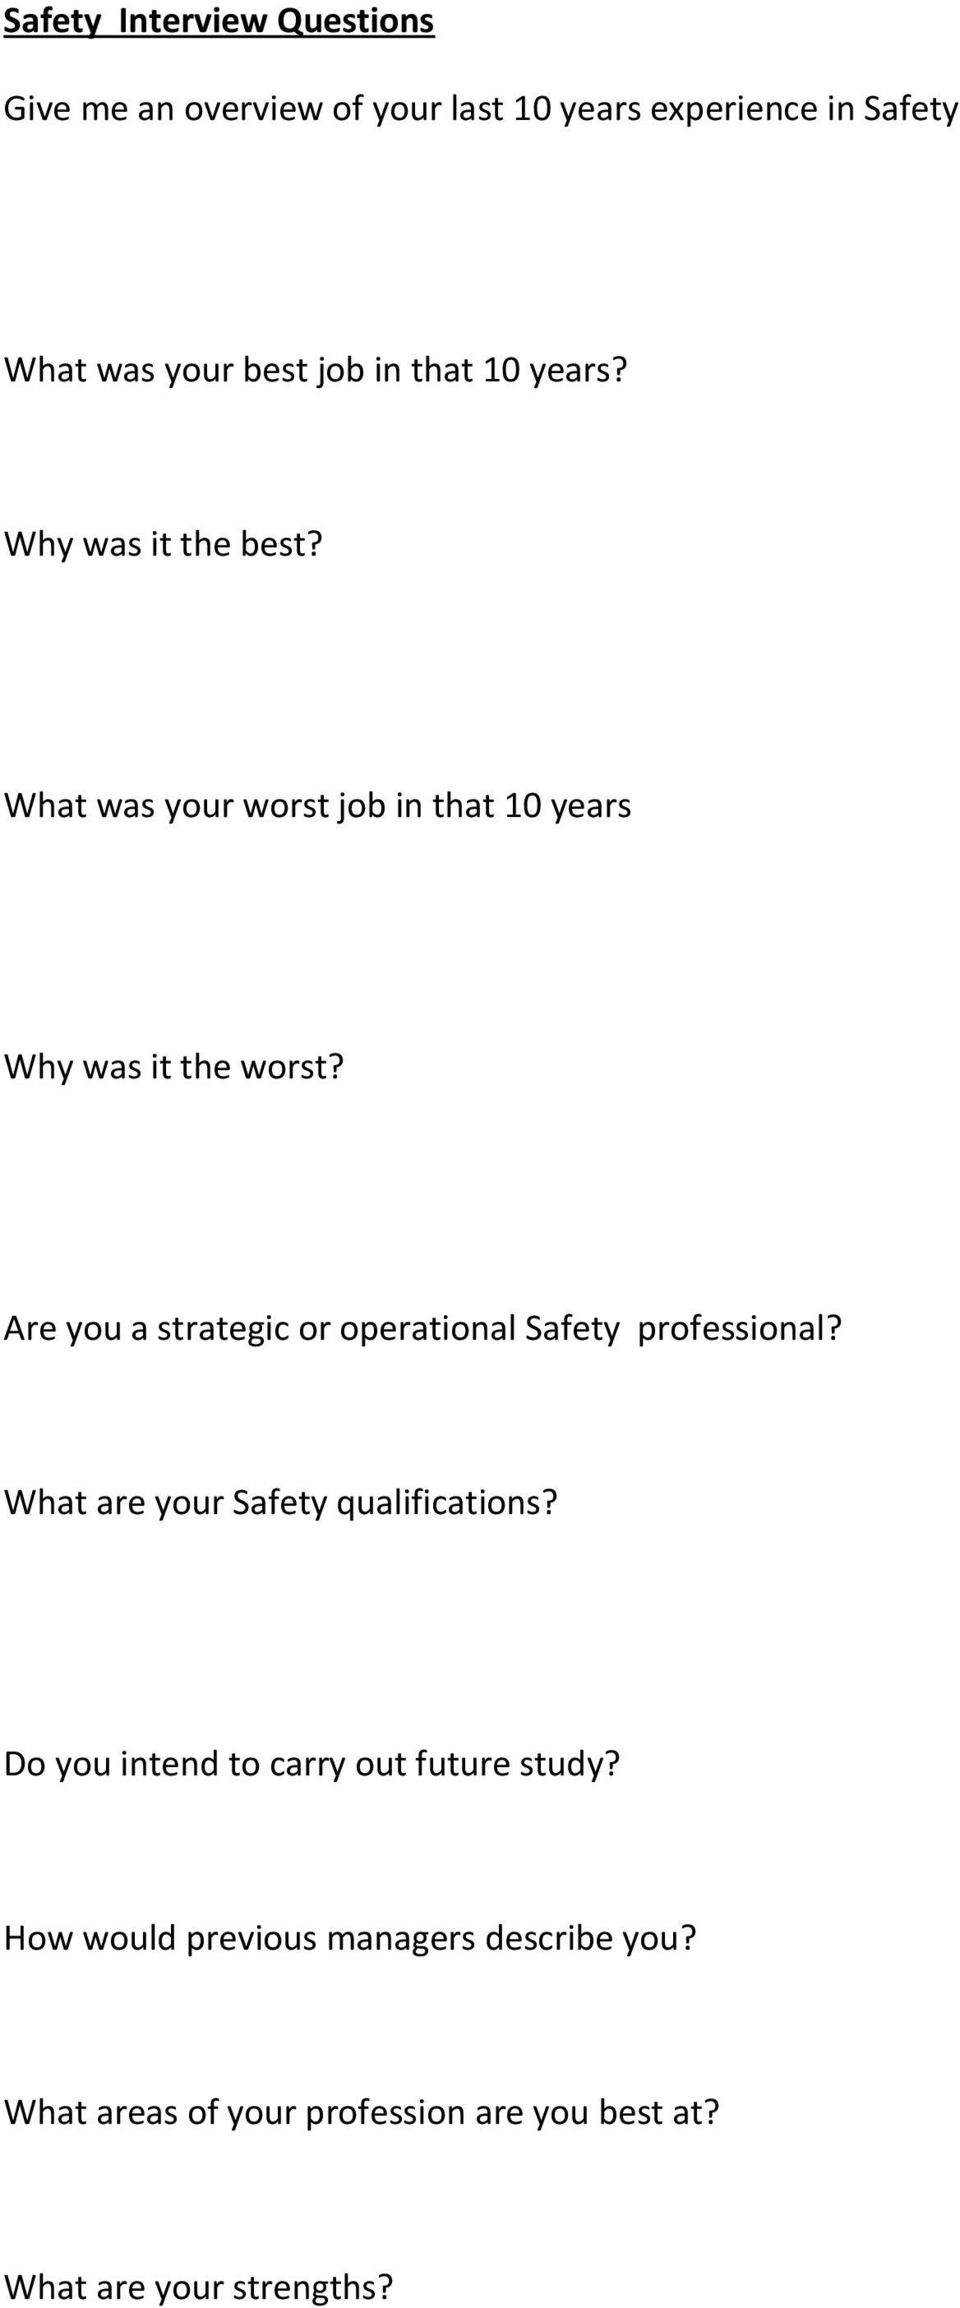 Are you a strategic or operational Safety professional? What are your Safety qualifications?